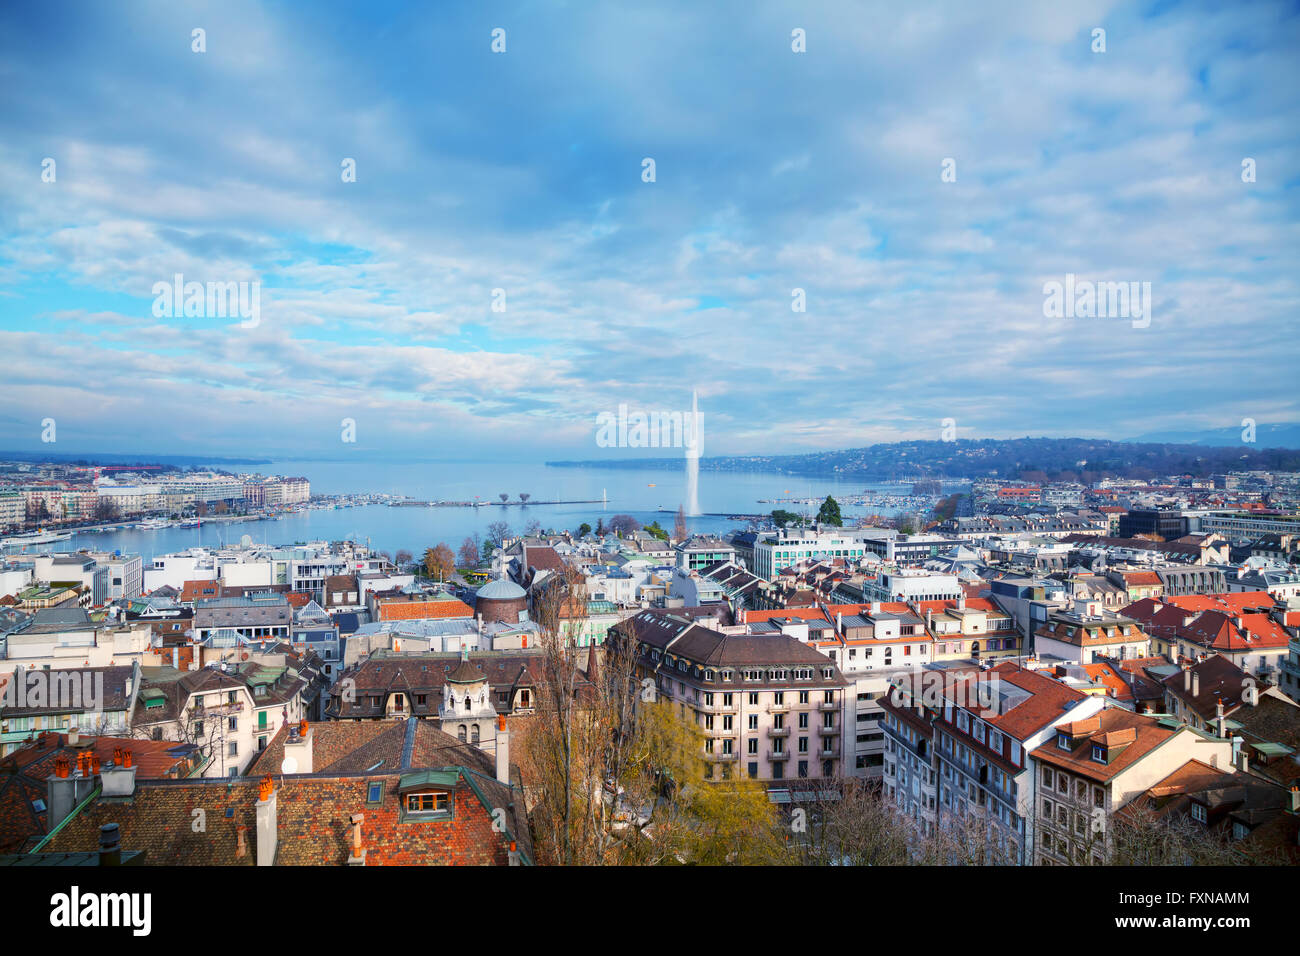 Aerial view of Geneva, Switzerland on a cloudy day - Stock Image